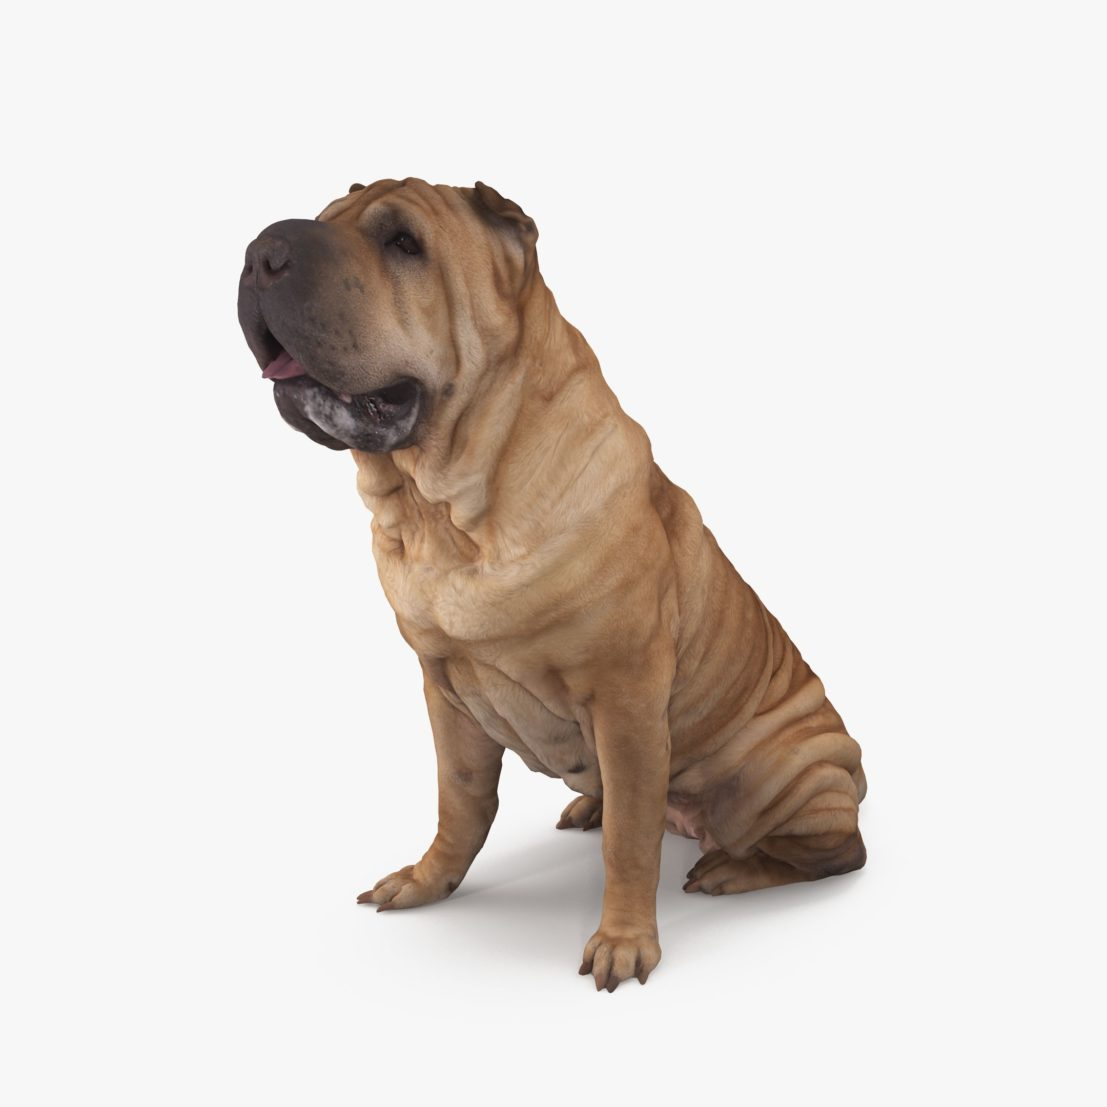 Shar Pei Sitting Dog 3D Model | 3DTree Scanning Studio